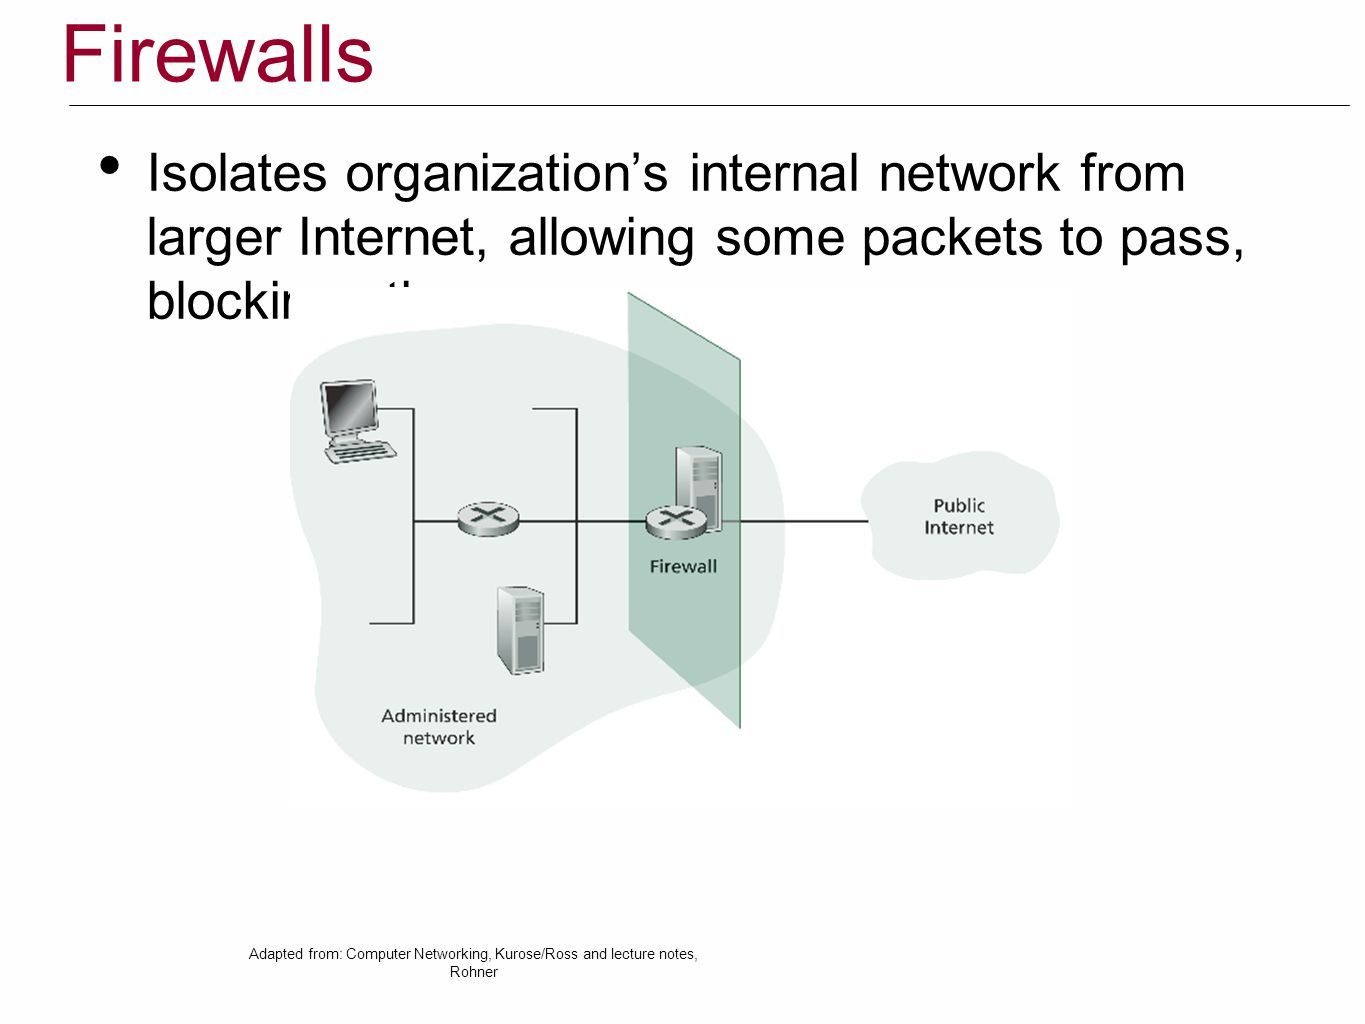 Firewalls Isolates organization's internal network from larger Internet, allowing some packets to pass, blocking others.